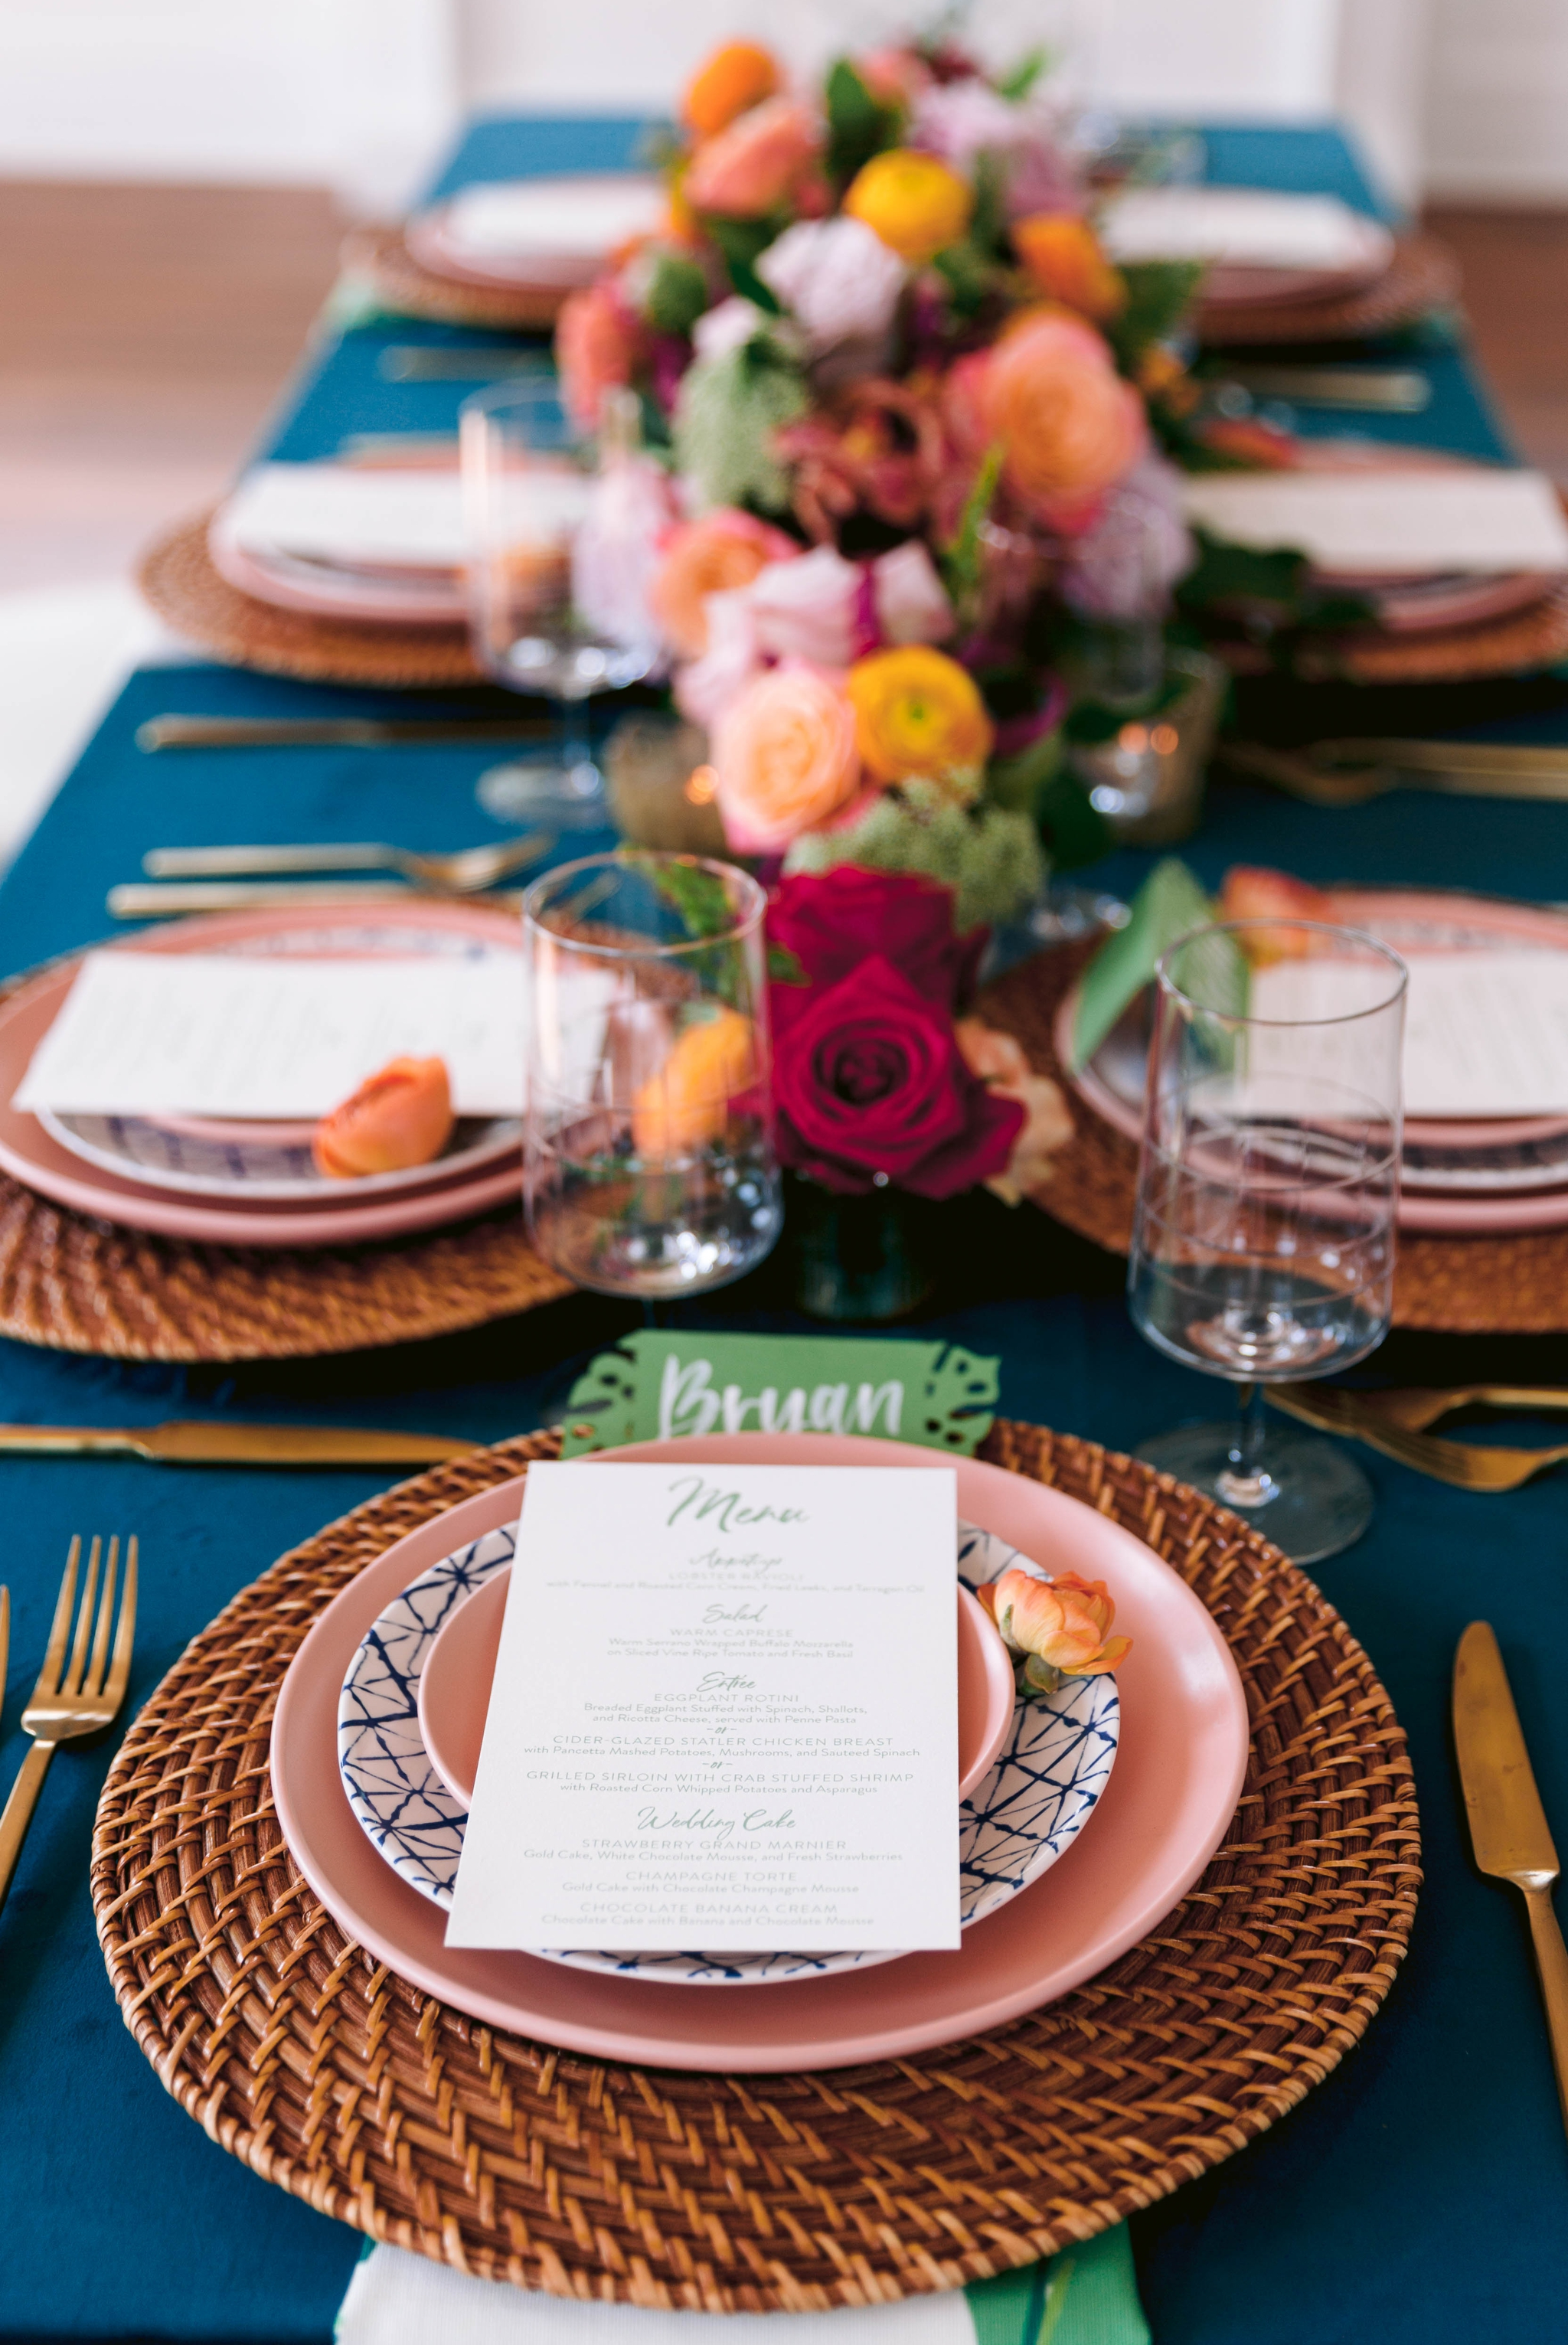 Table Setting with a gorgeous colorful flower arrangement, blush and blue plates with gold flatware and a tropical name card as well as a calligraphy menu - Navy, Green, Gold and Berry colored Tropical Wedding Inspiration for your Wedding in Hawaii! - Honolulu, Oahu, Hawaii Photographer